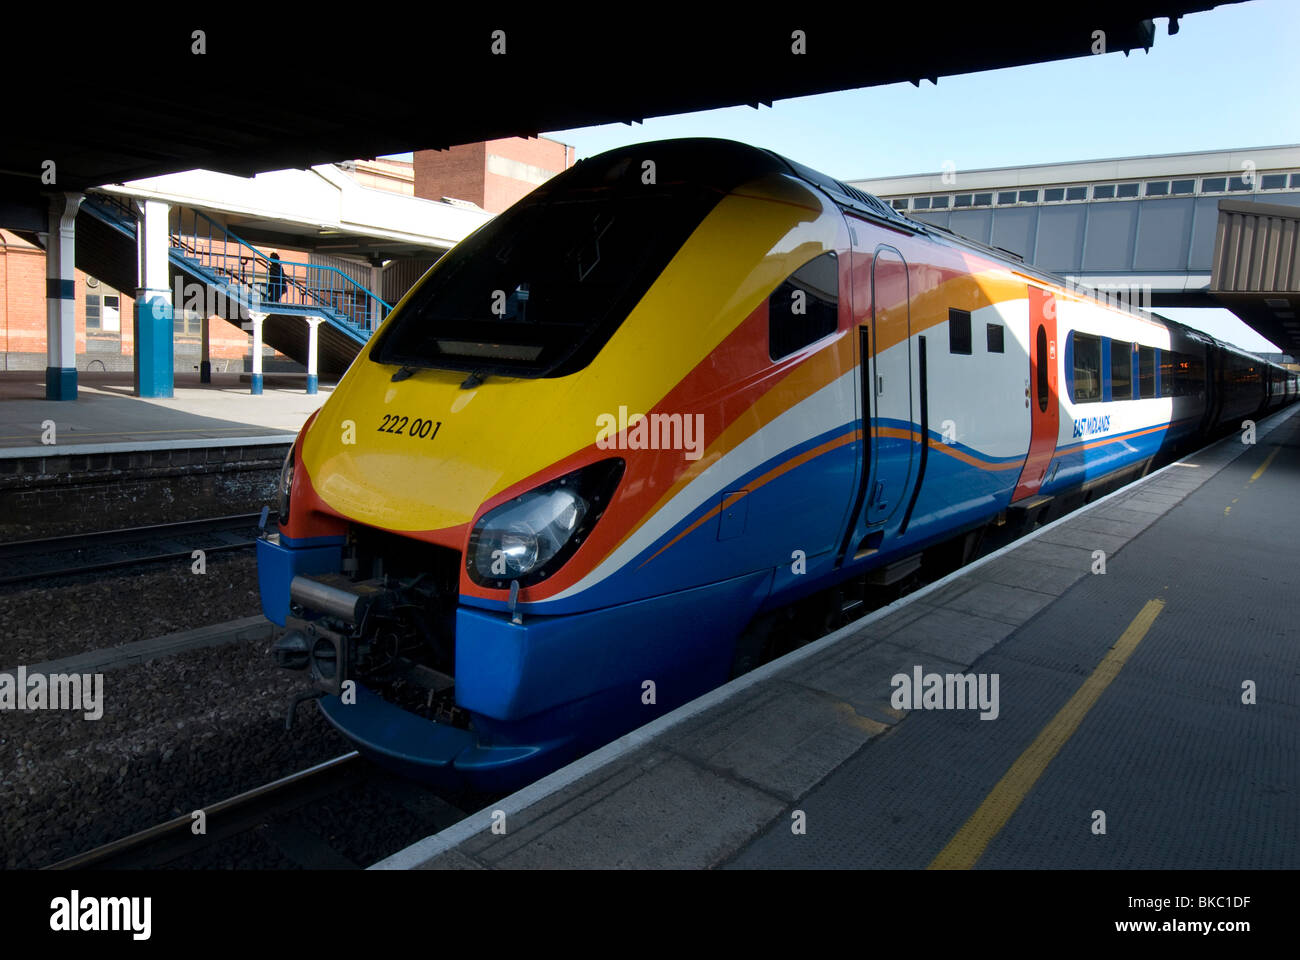 An East Midlands Class 222 diesel train in 2010 livery of yellow, orange, white and blue. - Stock Image